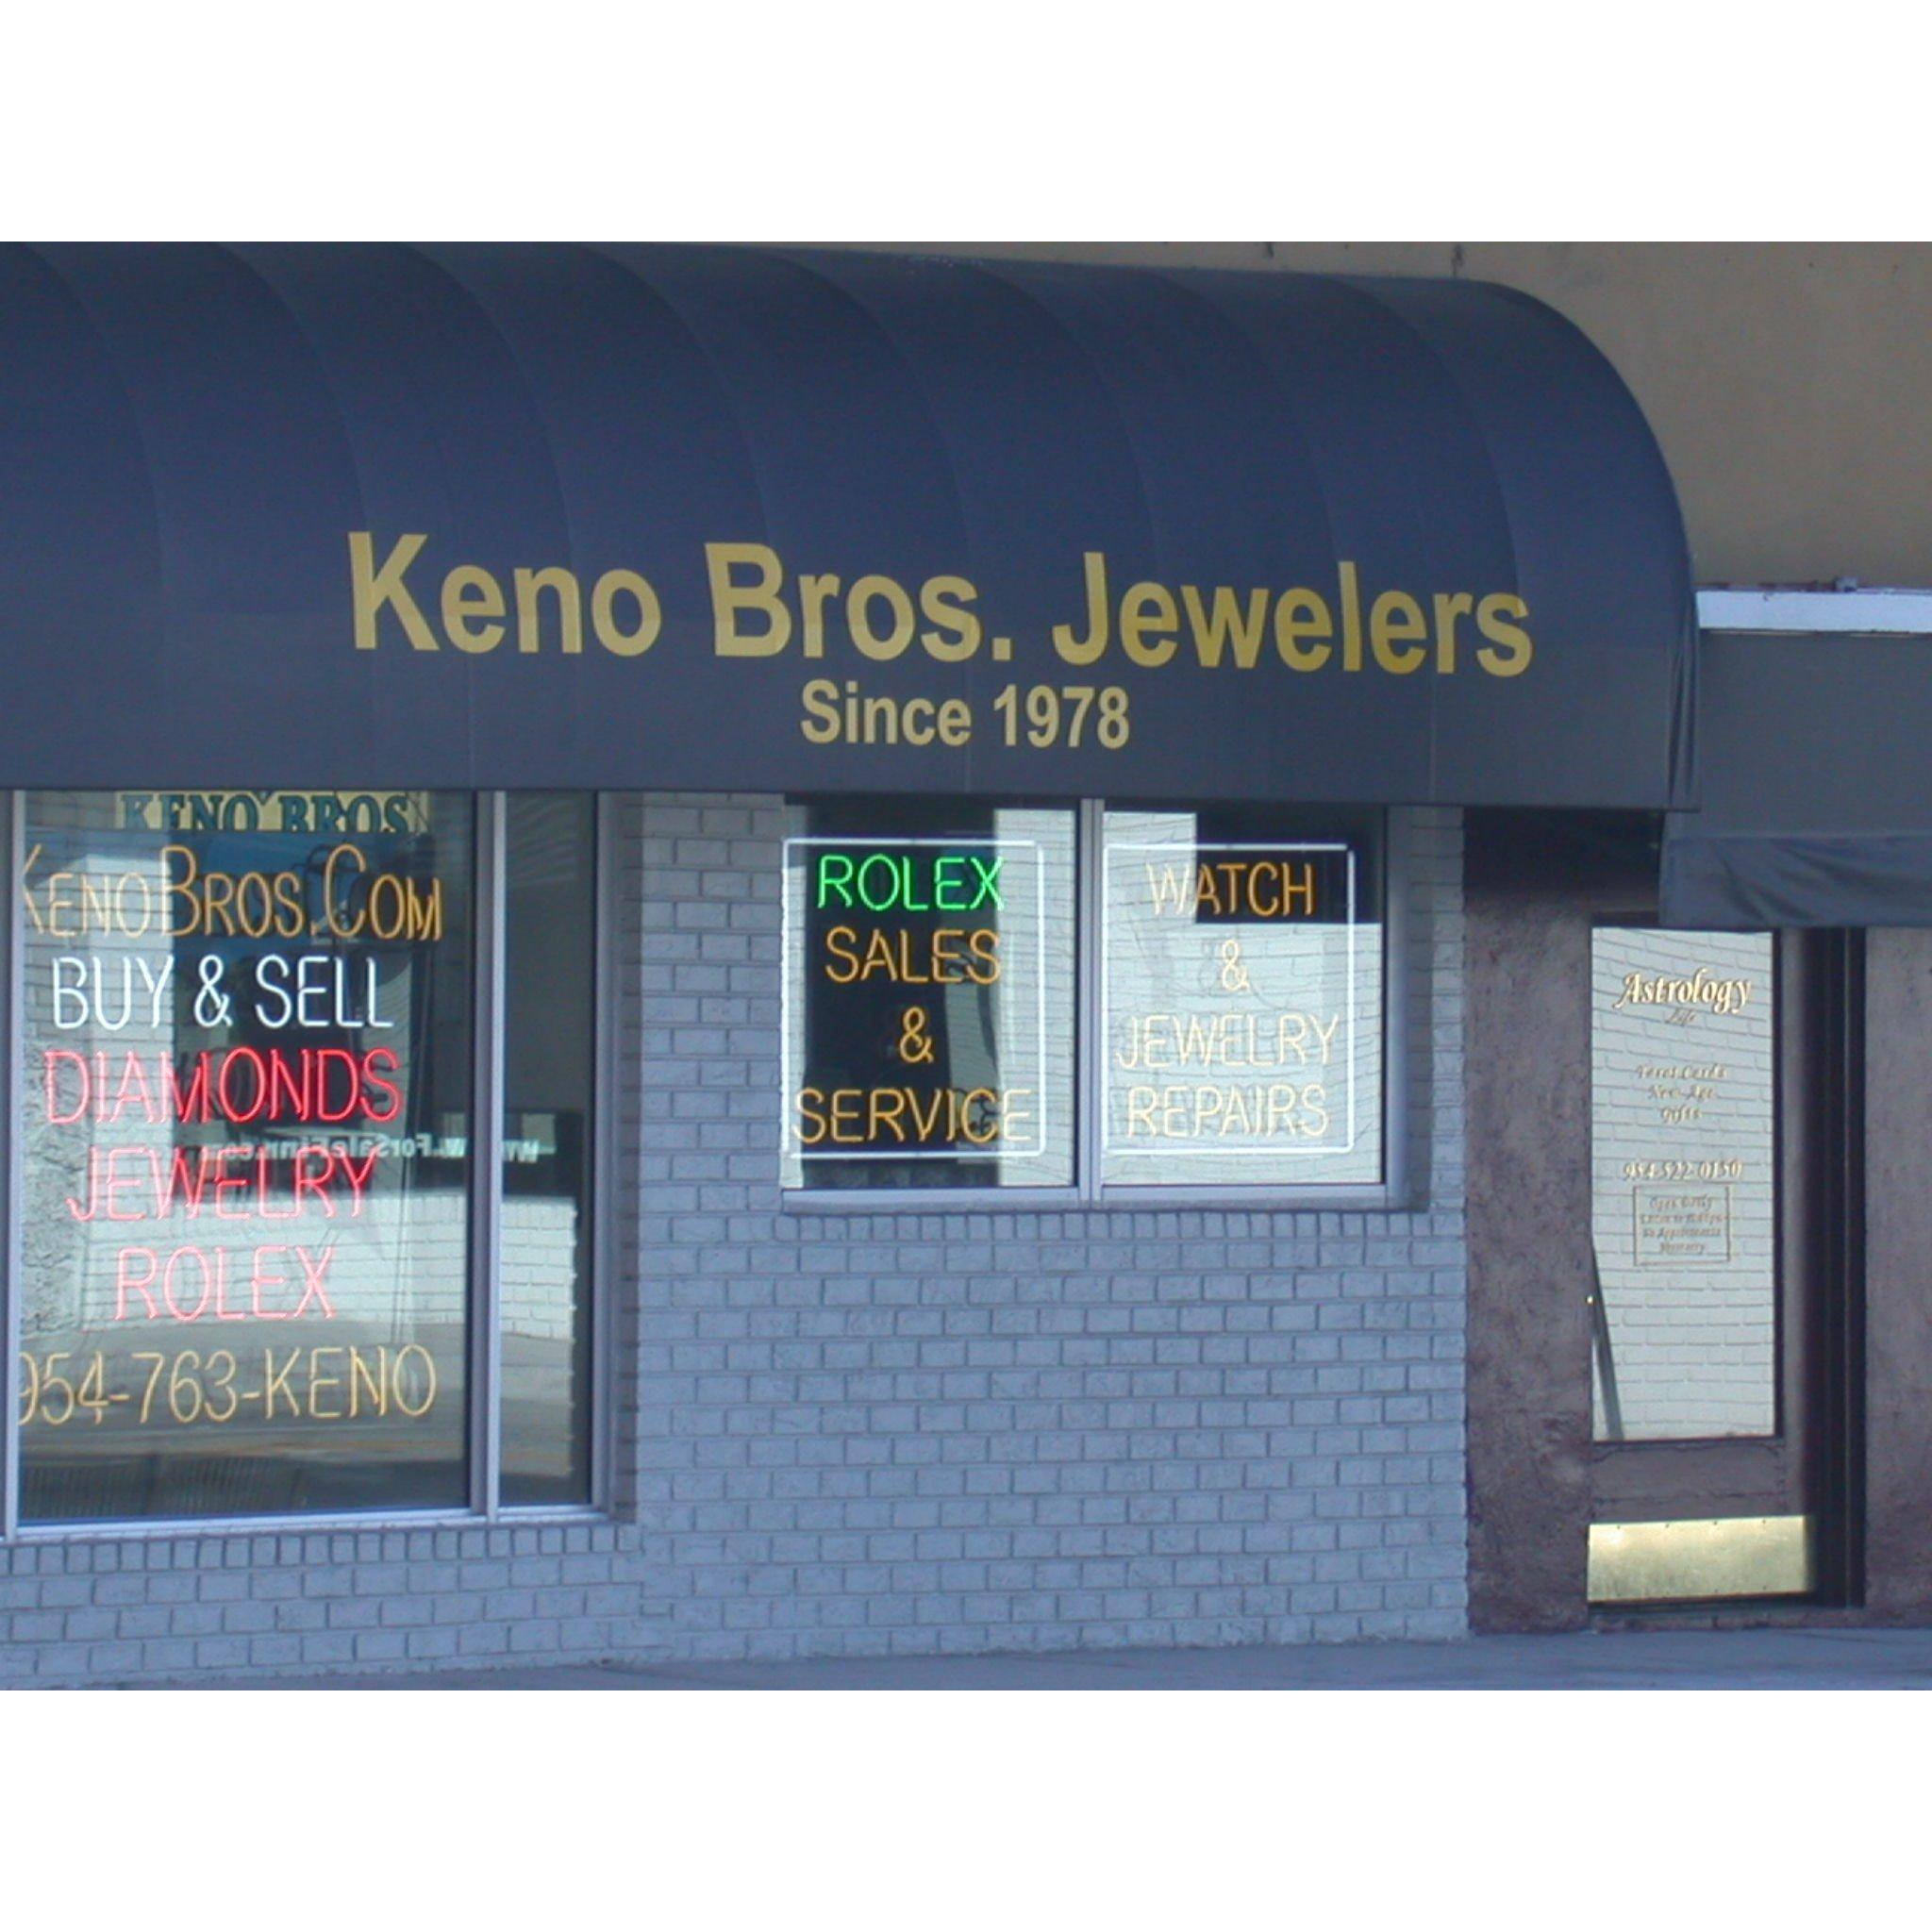 Keno brothers jewelers coupons near me in fort lauderdale for Local jewelry stores near me